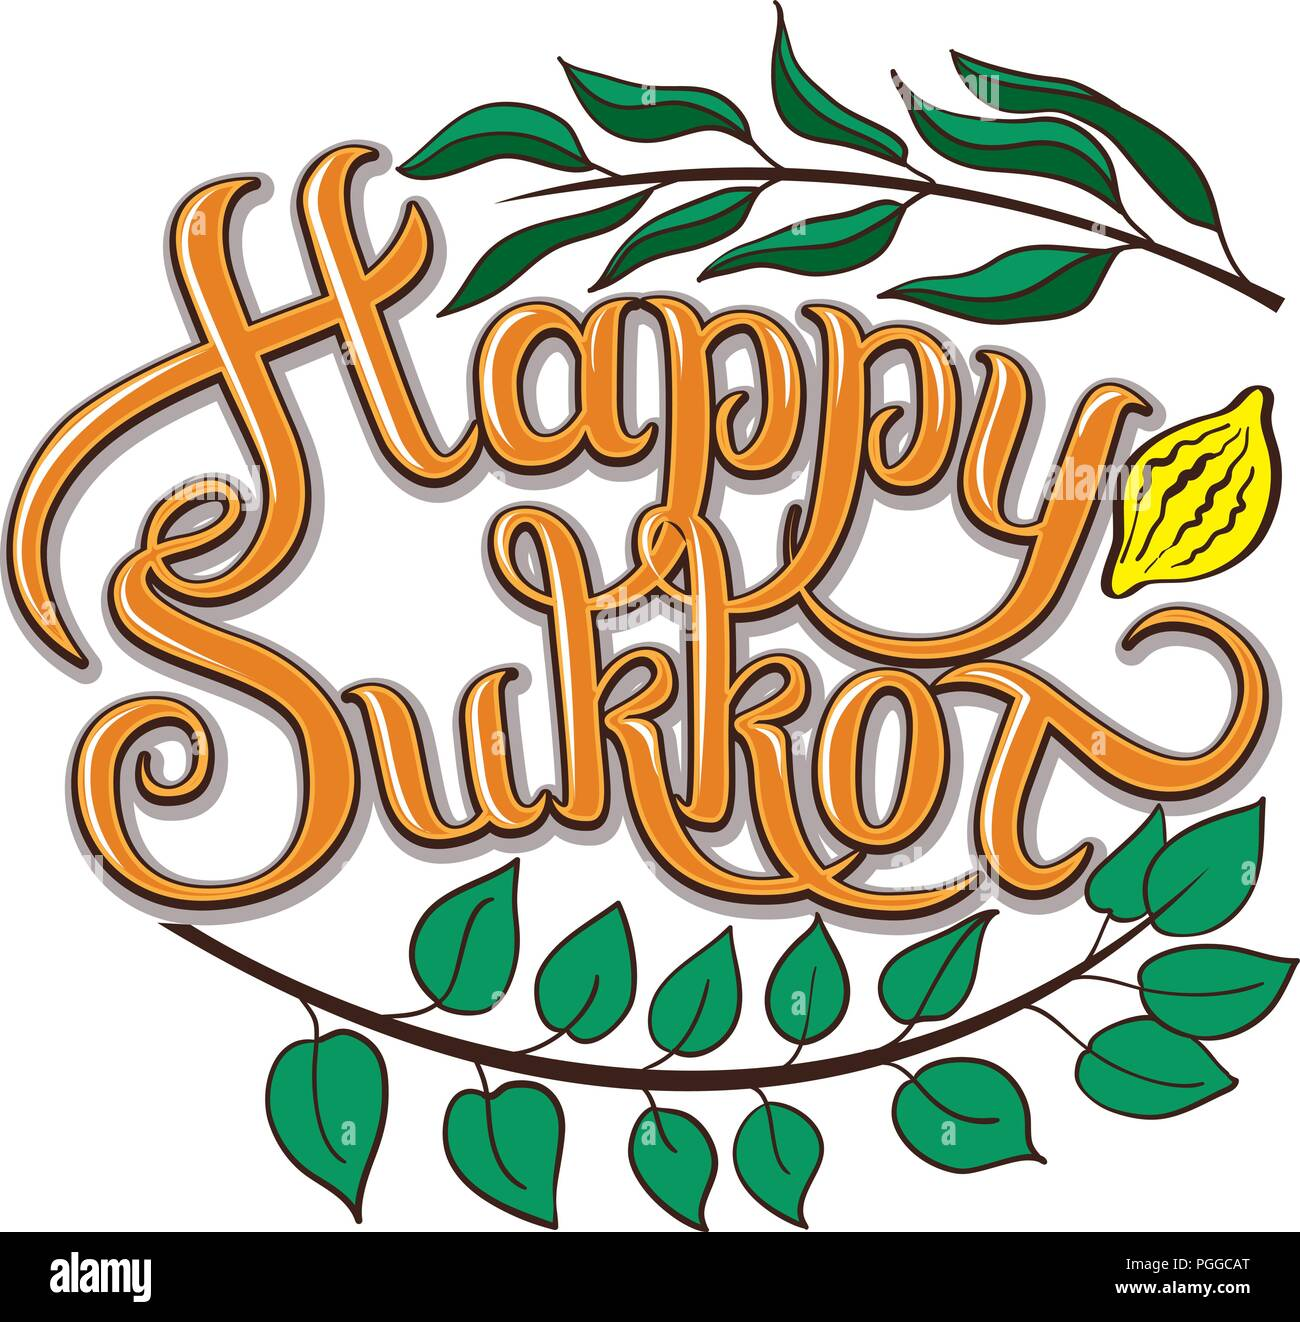 Happy Sukkot hand drawn vector card, border, background, banner, frame with hand lettered sign, palm leaf, citron, myrtle and willow leaves - Stock Image